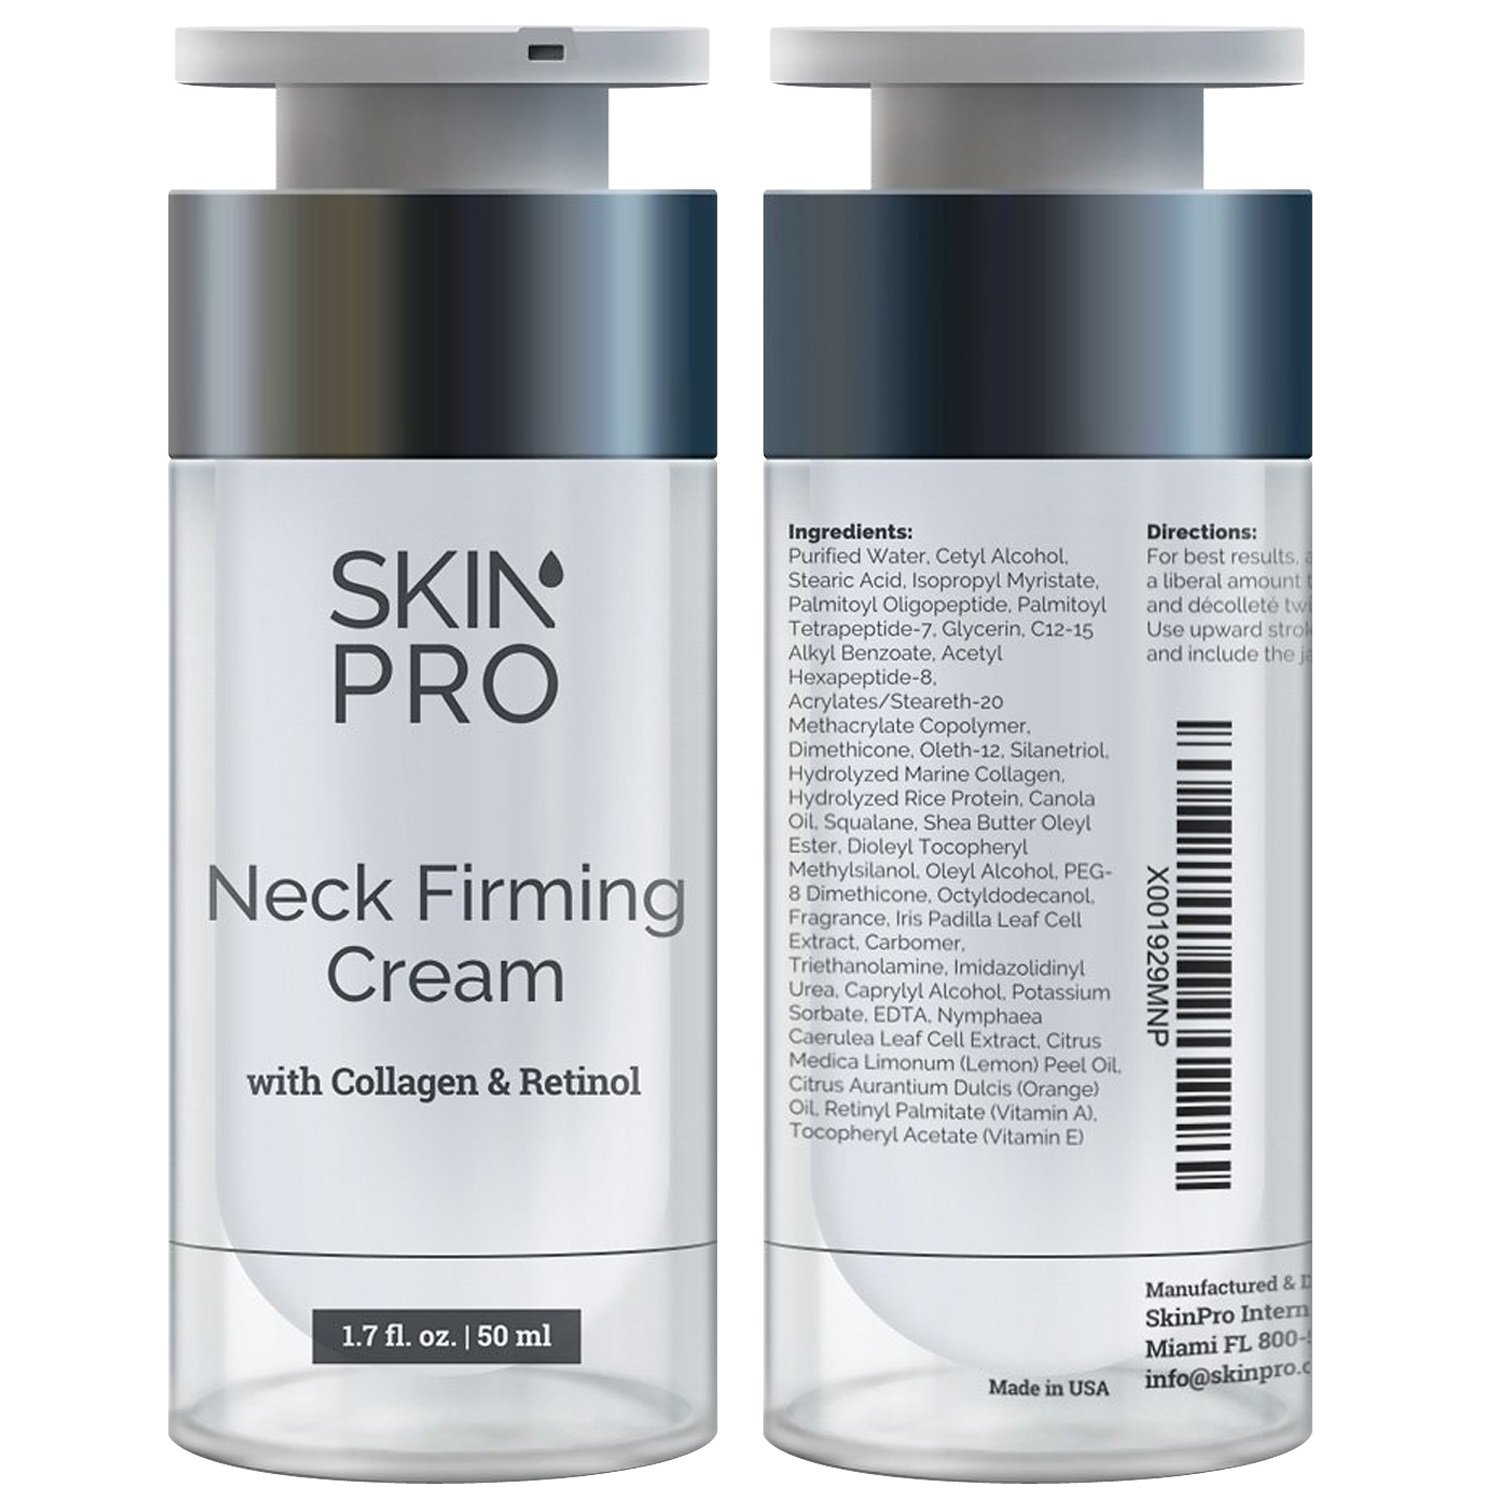 Neck Firming Cream - Anti Aging & Skin Tightening Serum by SkinPro